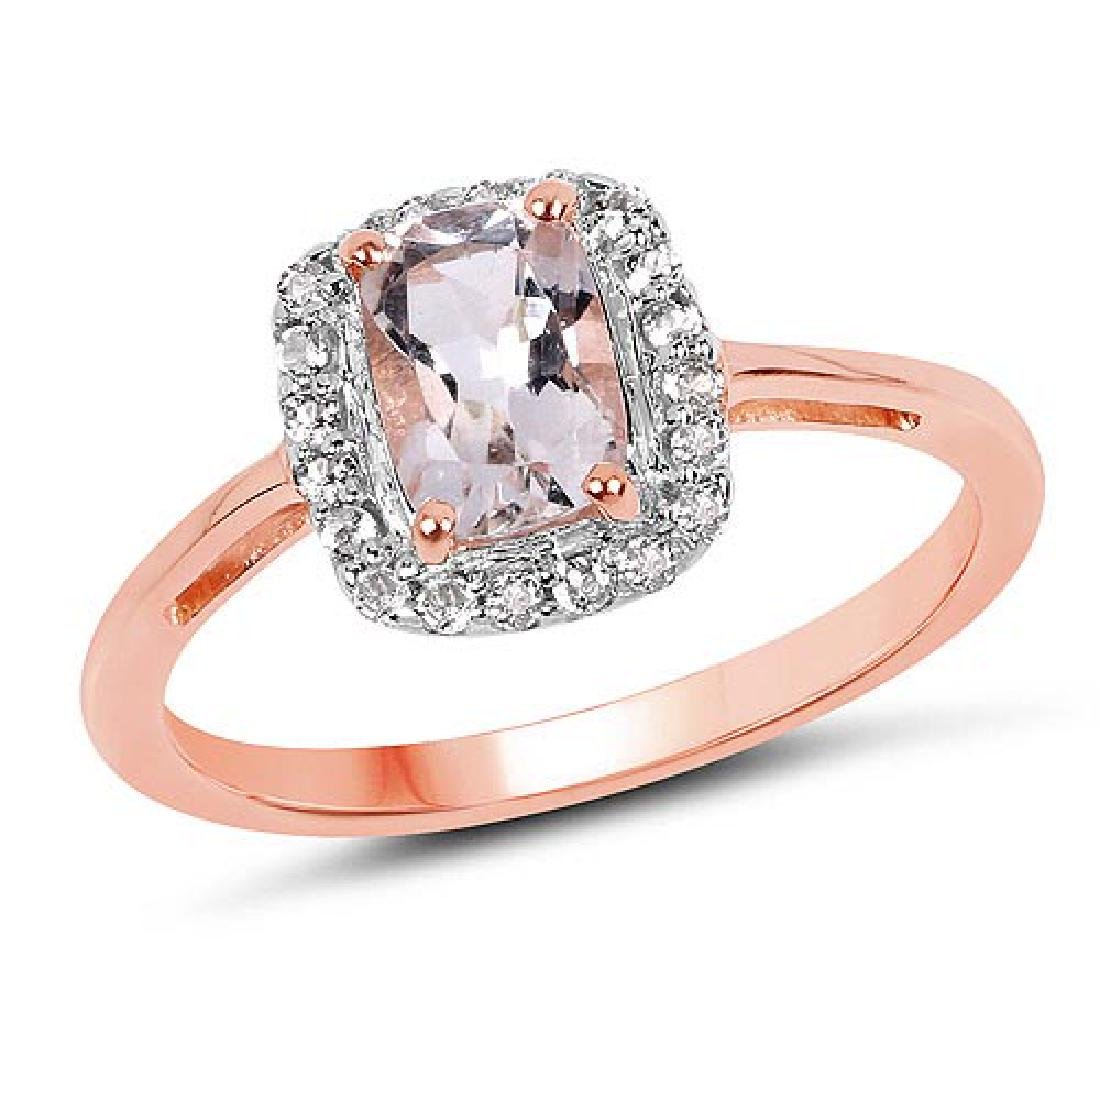 14K Rose Gold Plated 1.05 CTW Genuine Morganite and Whi